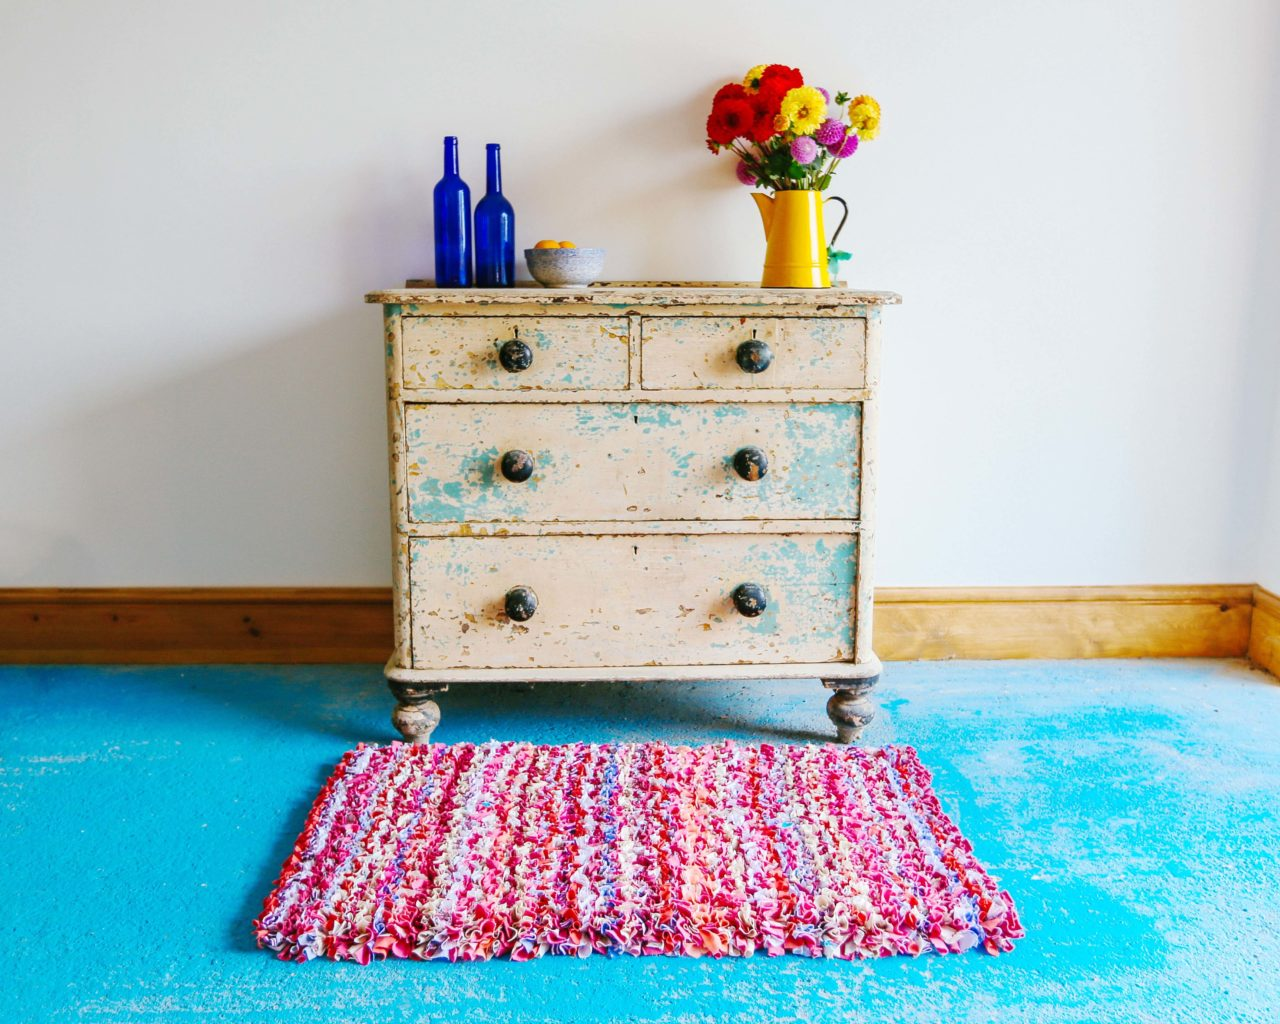 Pink Striped Shaggy Rag Rug that can be made using a Ragged Life kit